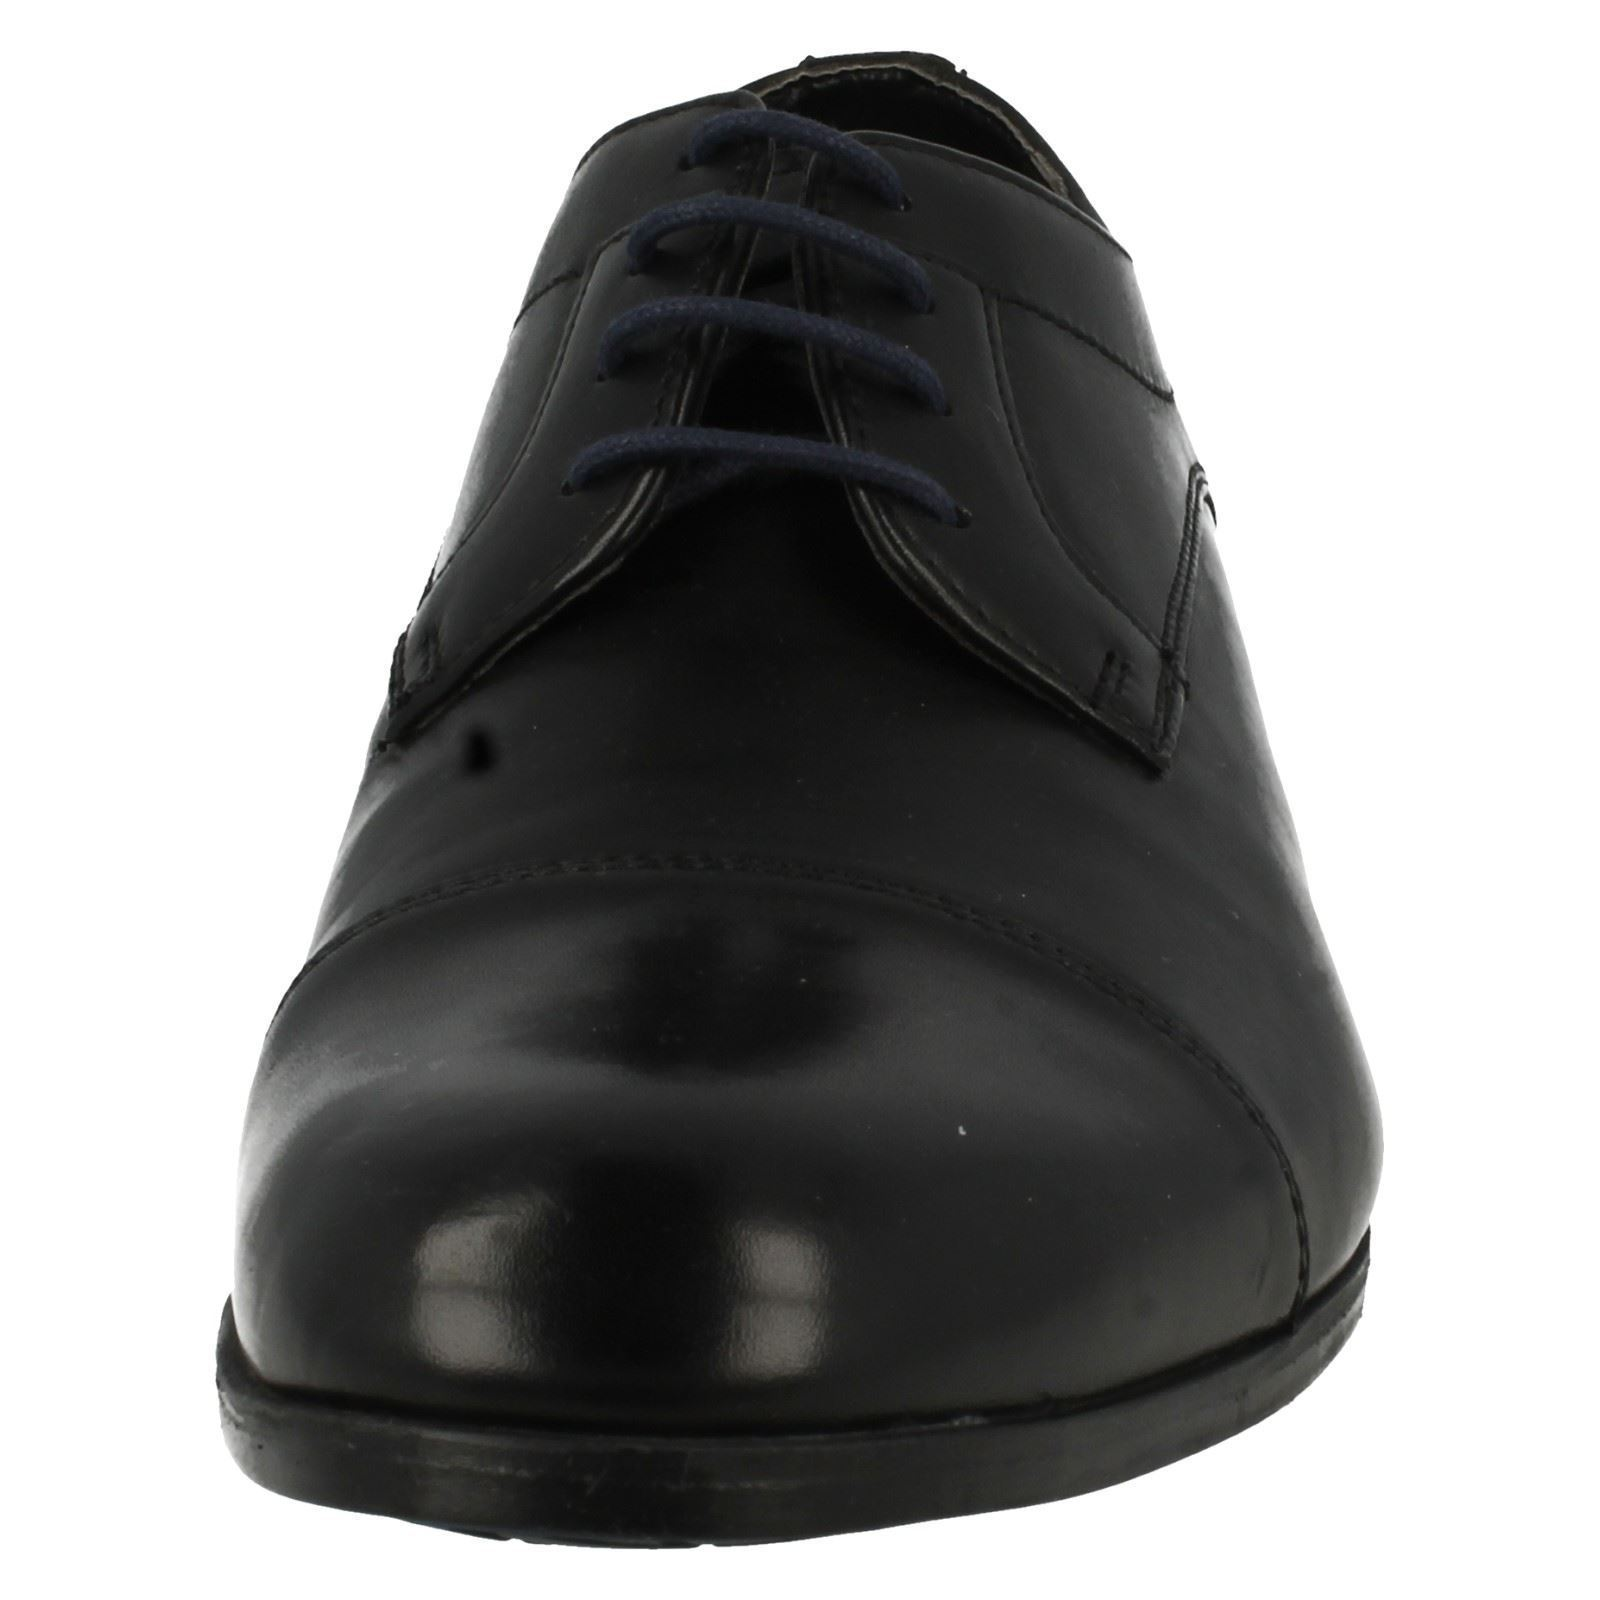 Men's Clarks Formal Lace Up Cap Shoes Label - Banfield Cap Up e95b00